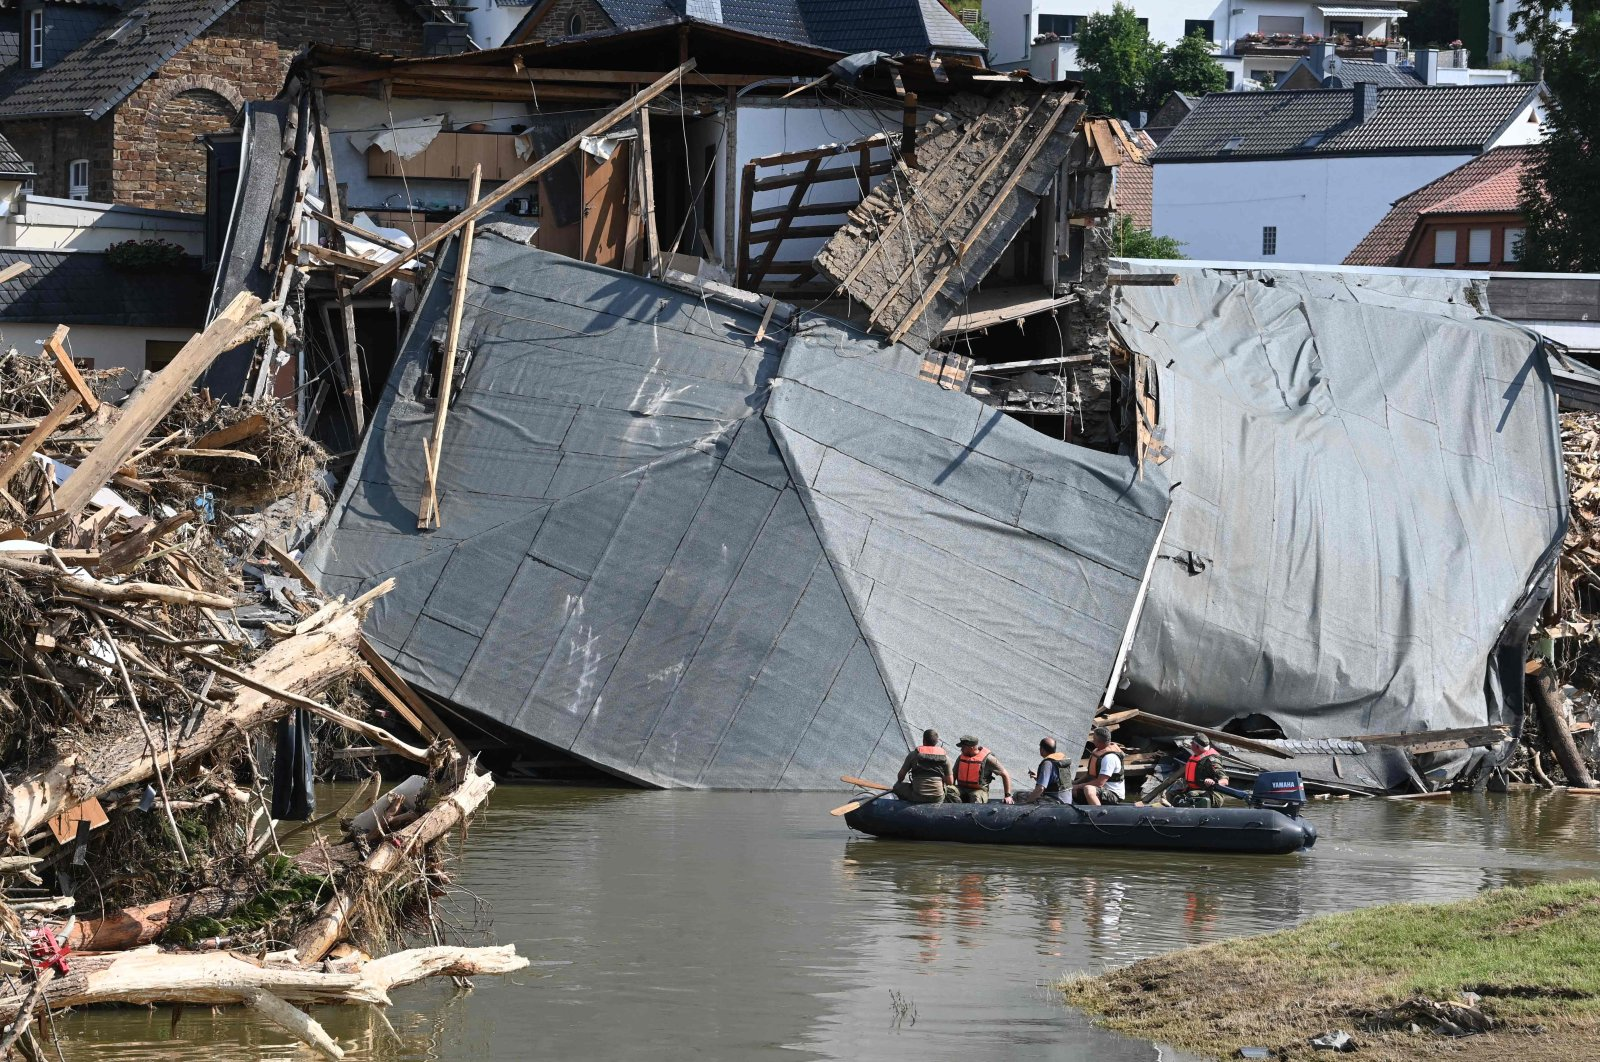 Military personnel floats on a boat on the Ahr river as the roof of a damaged house hangs on the water in Rech, Rhineland-Palatinate, after devastating floods hit the region, western Germany, July 21, 2021. (AFP Photo)